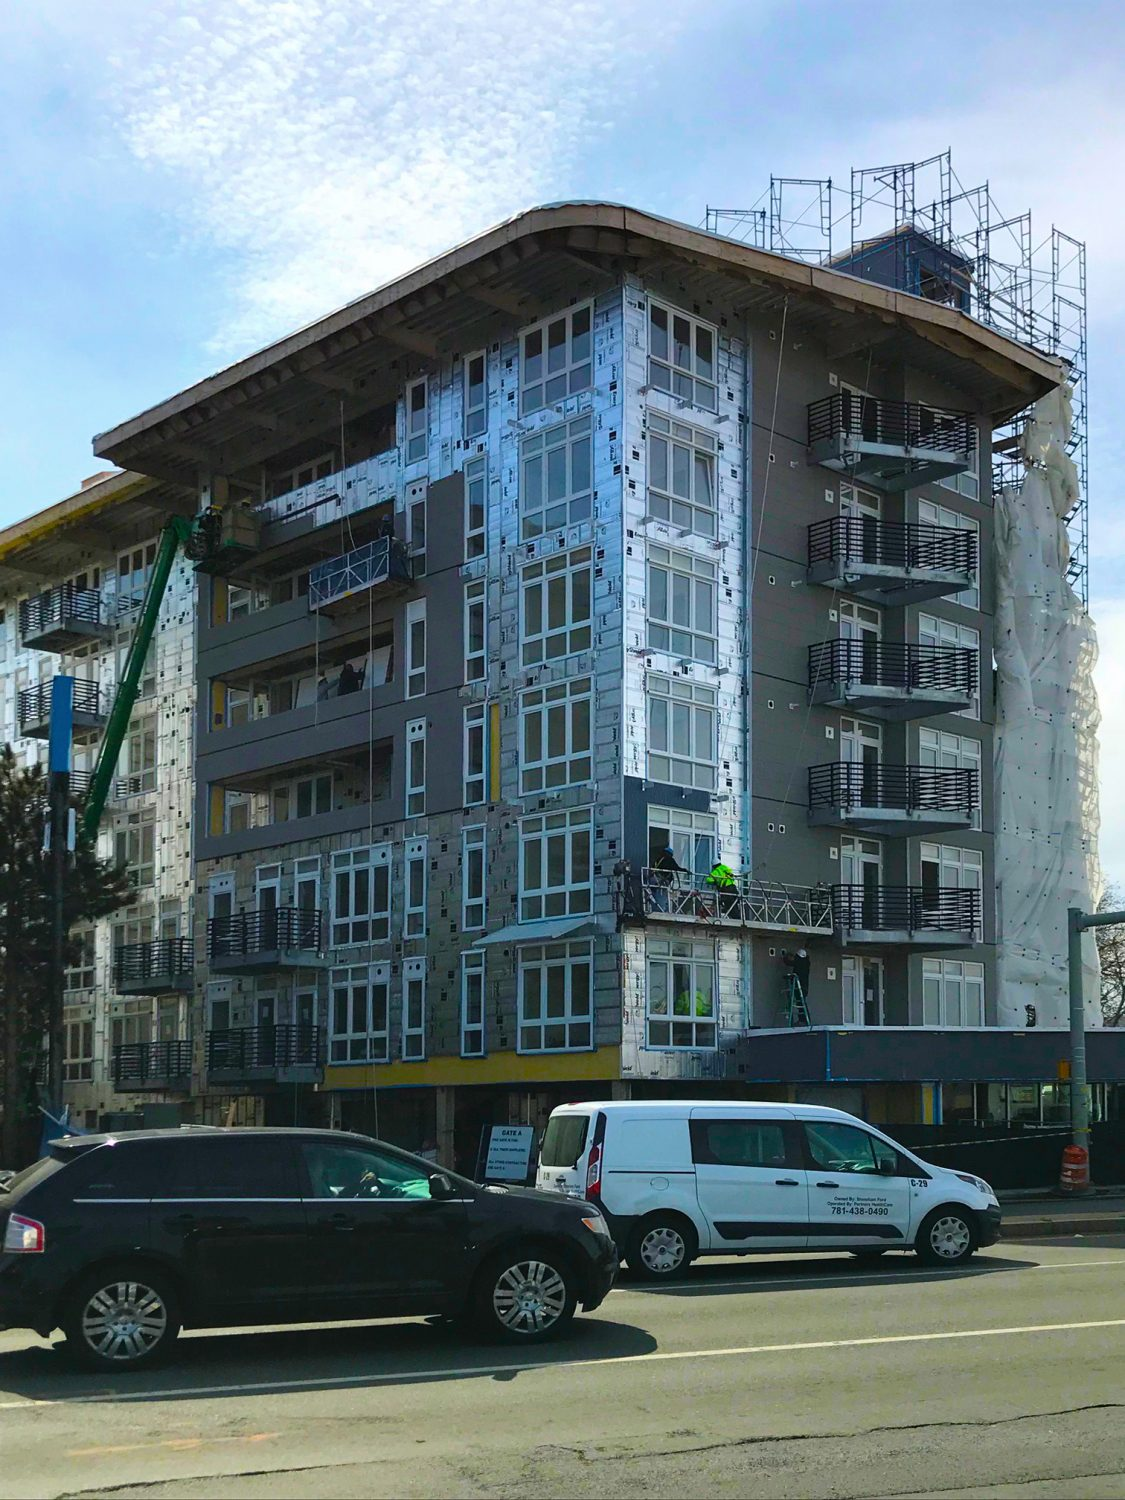 Point 262 Condominiums is in-progress and will be finishing up later in 2018!